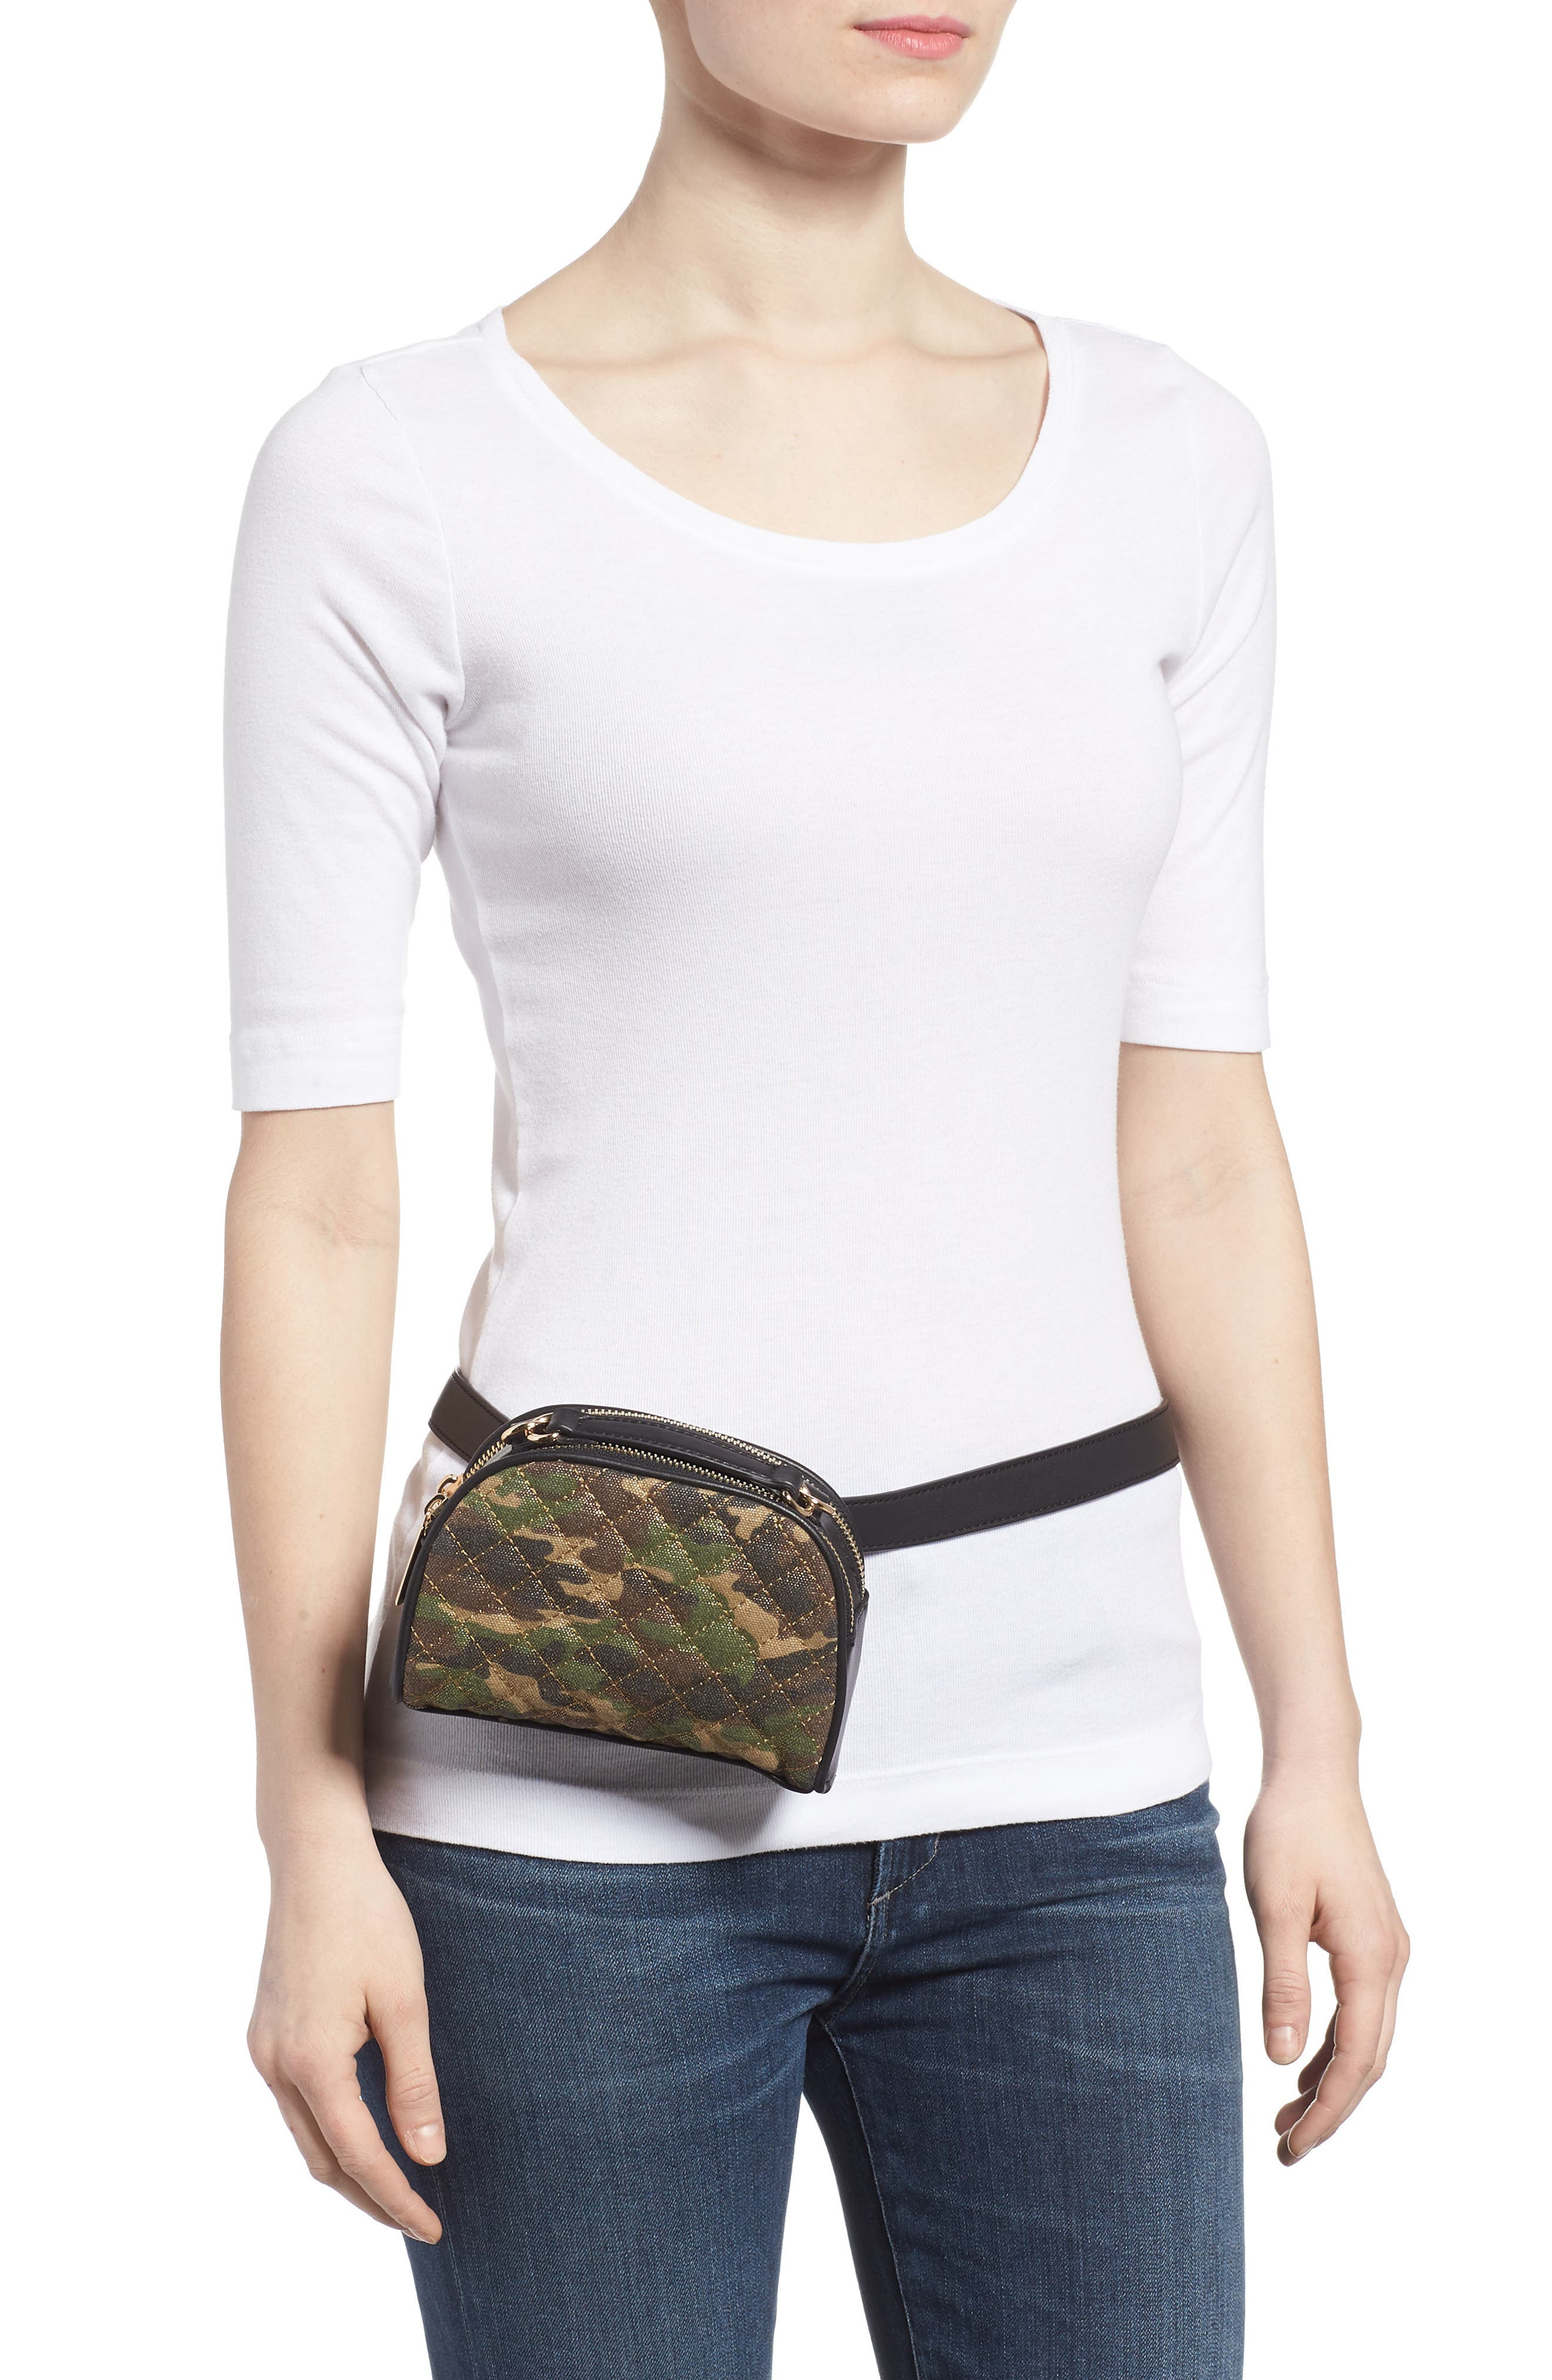 Mali + Lili Quilted Camouflage Belt Bag,                             Alternate thumbnail 4, color,                             Camouflage